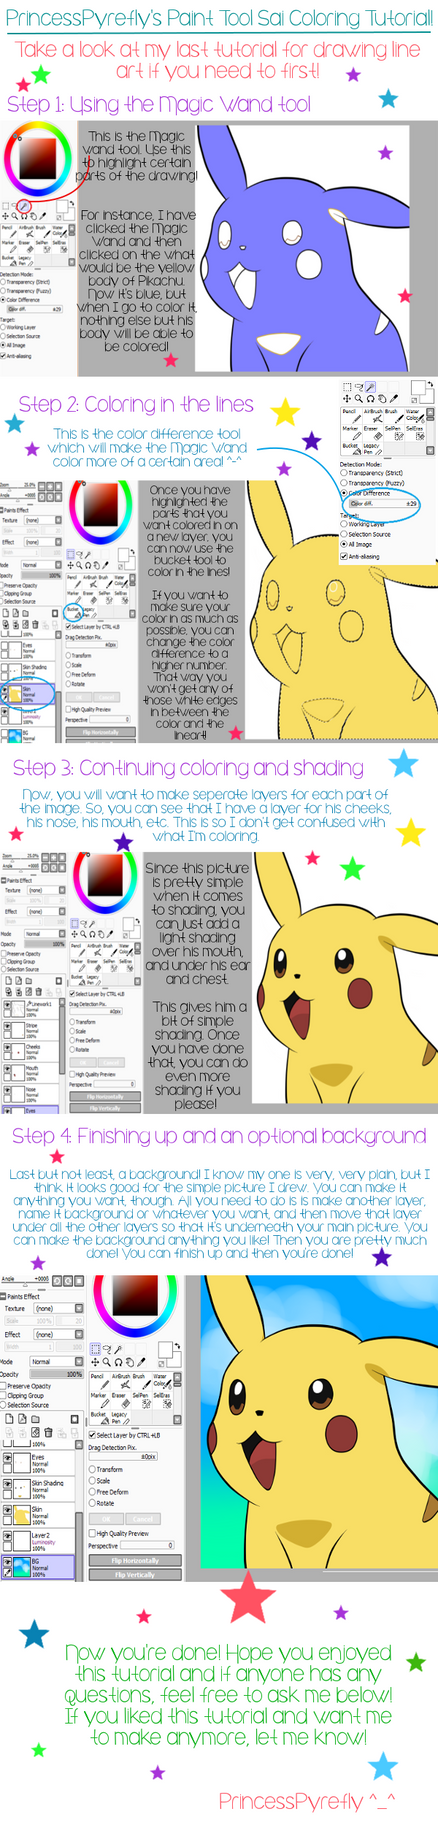 Paint Tool Sai Coloring Tutorial by PrincessPyrefly